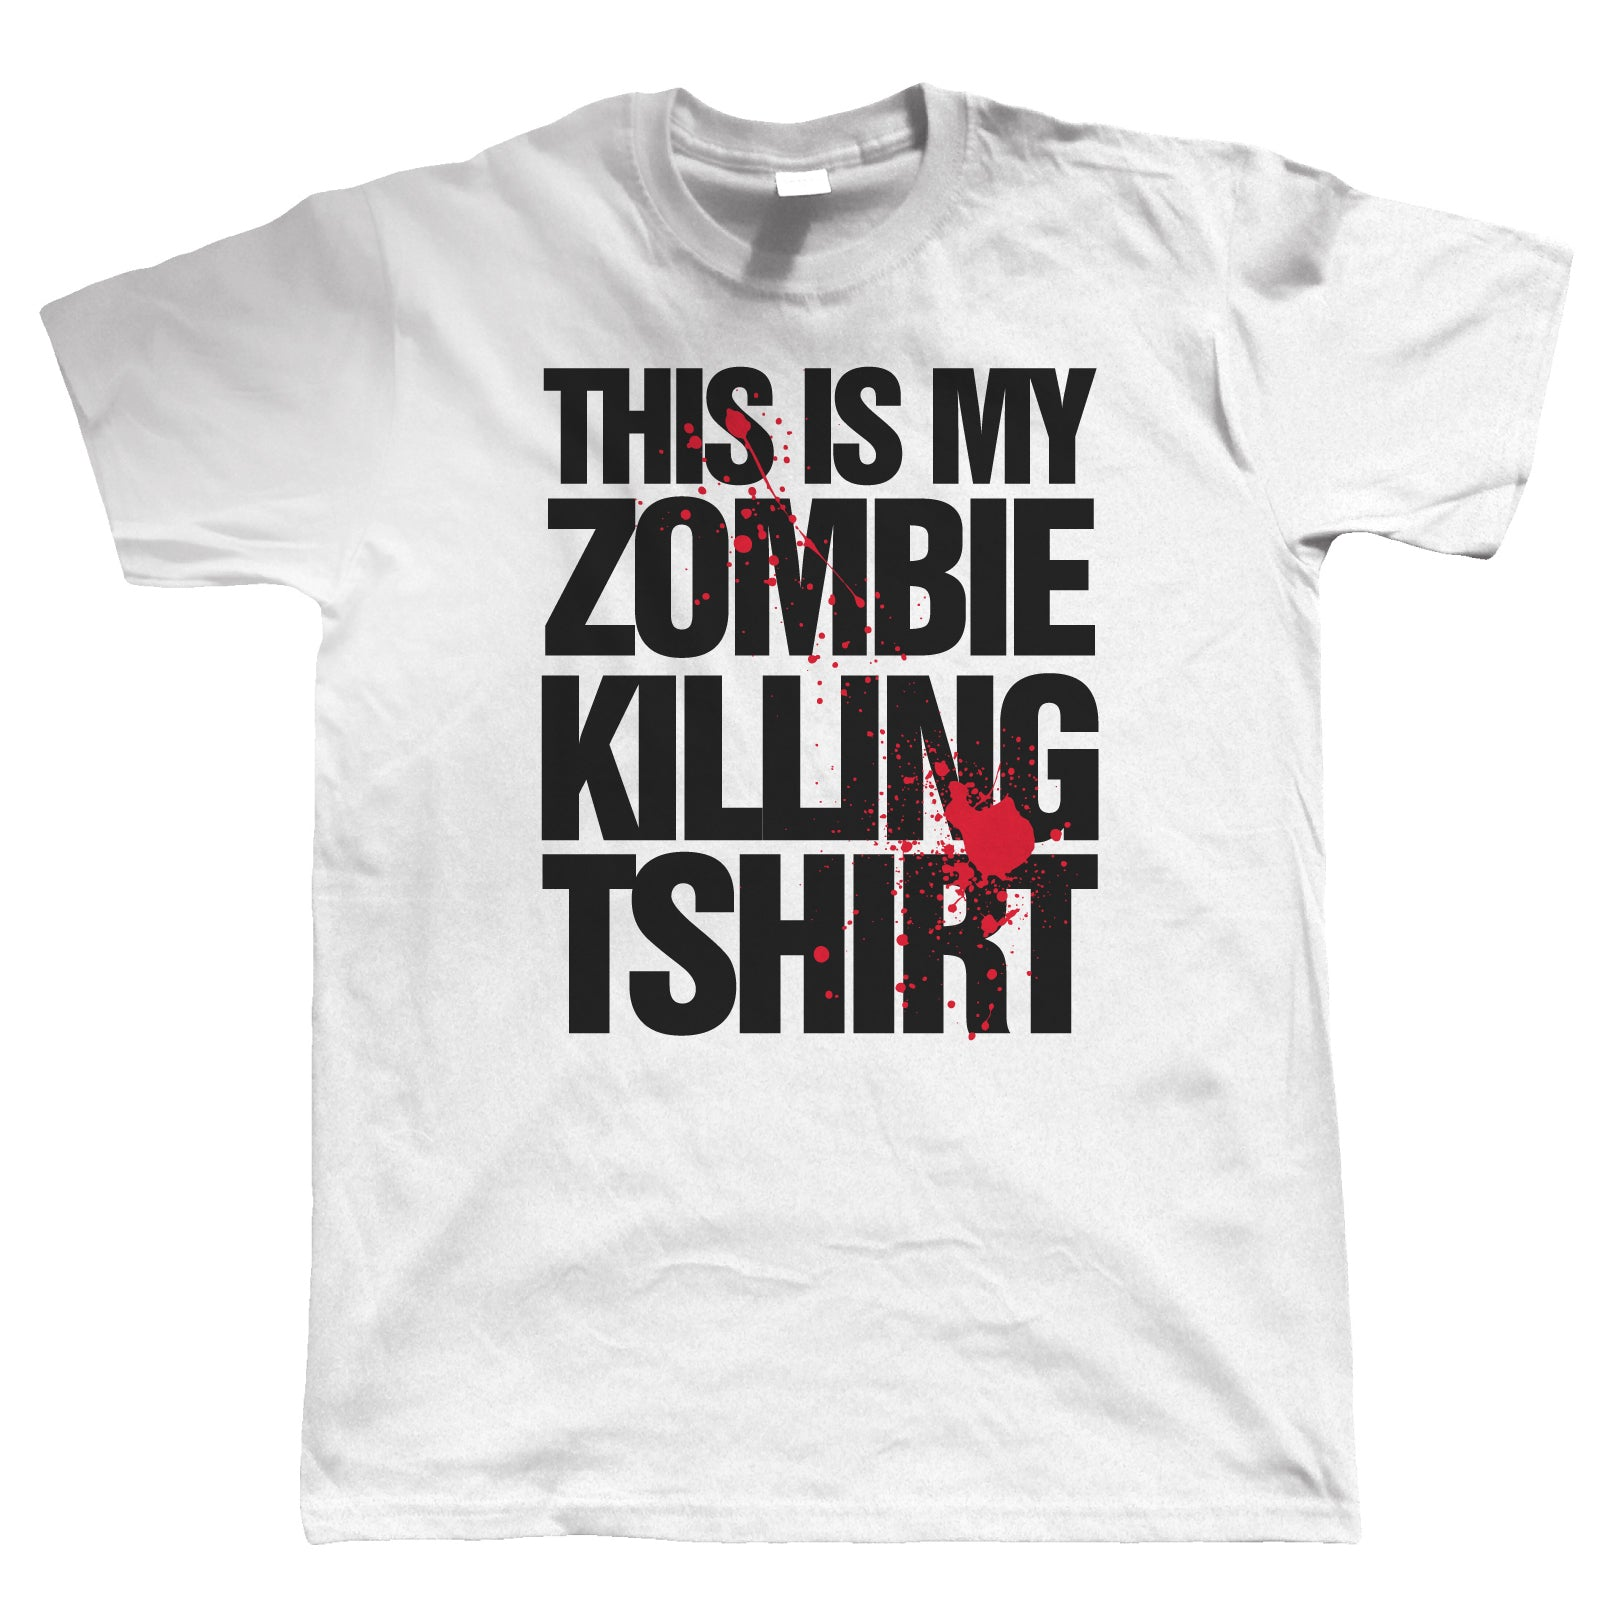 This Is My Zombie Killing T Shirt, Mens Horror T Shirt